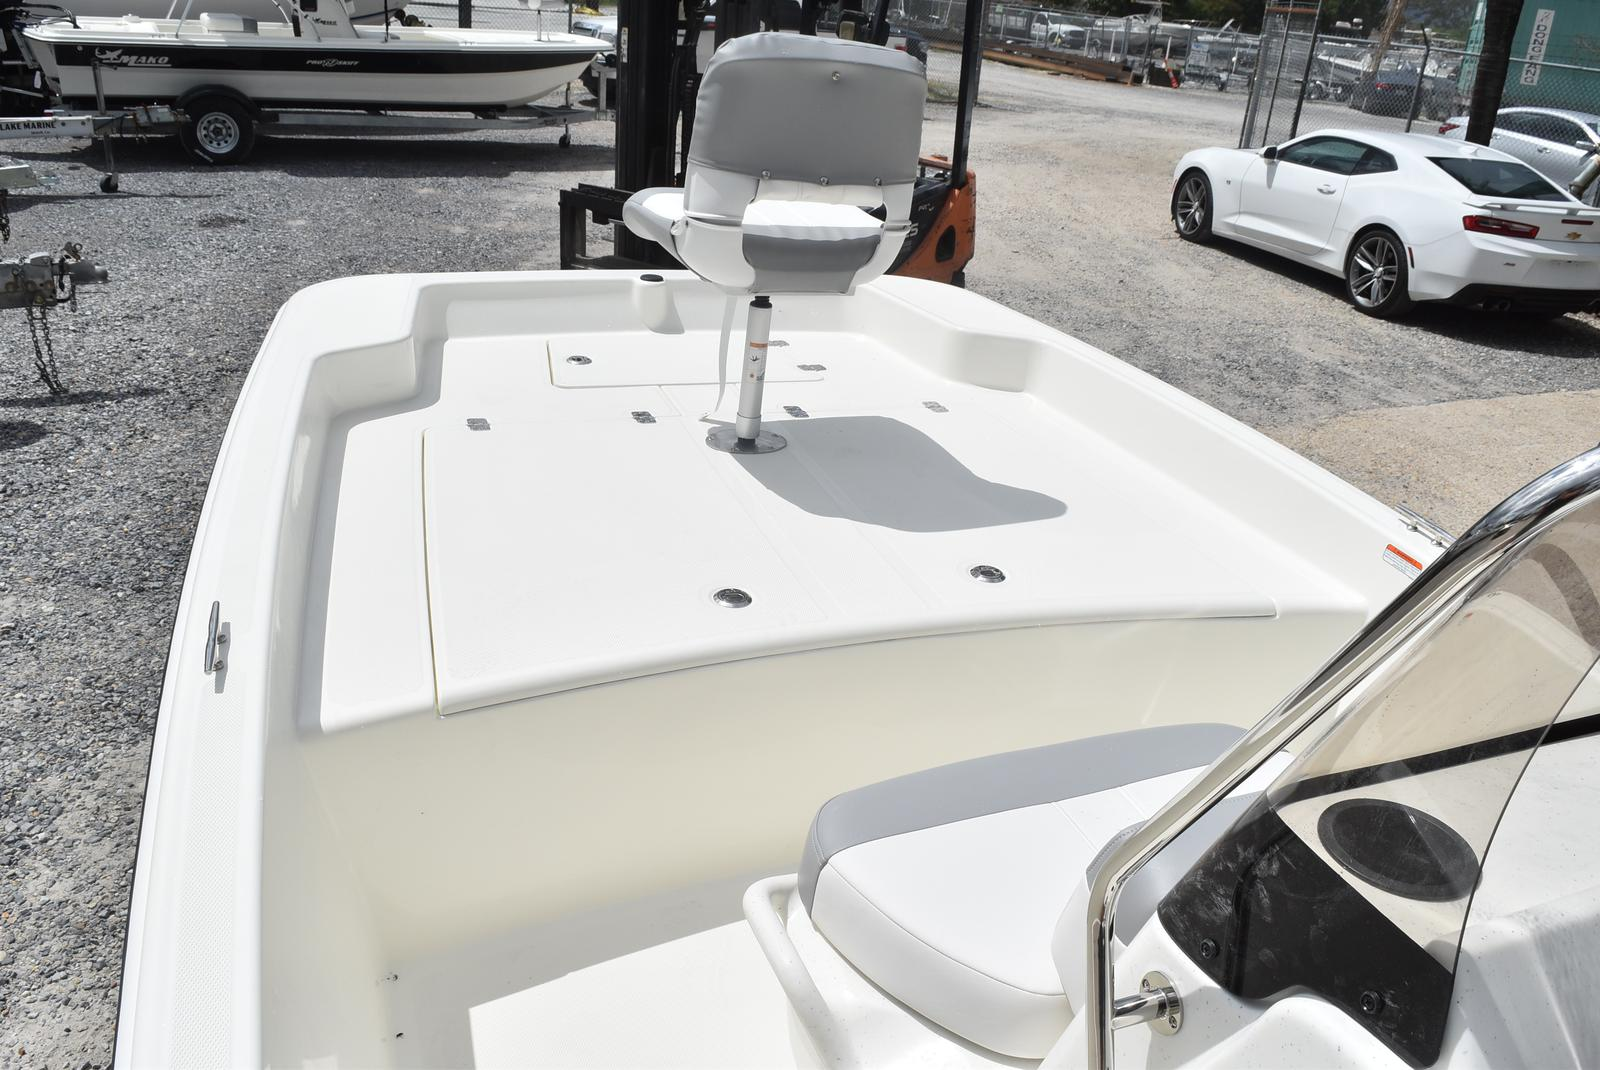 2020 Mako boat for sale, model of the boat is Pro Skiff 17, 75 ELPT & Image # 396 of 702